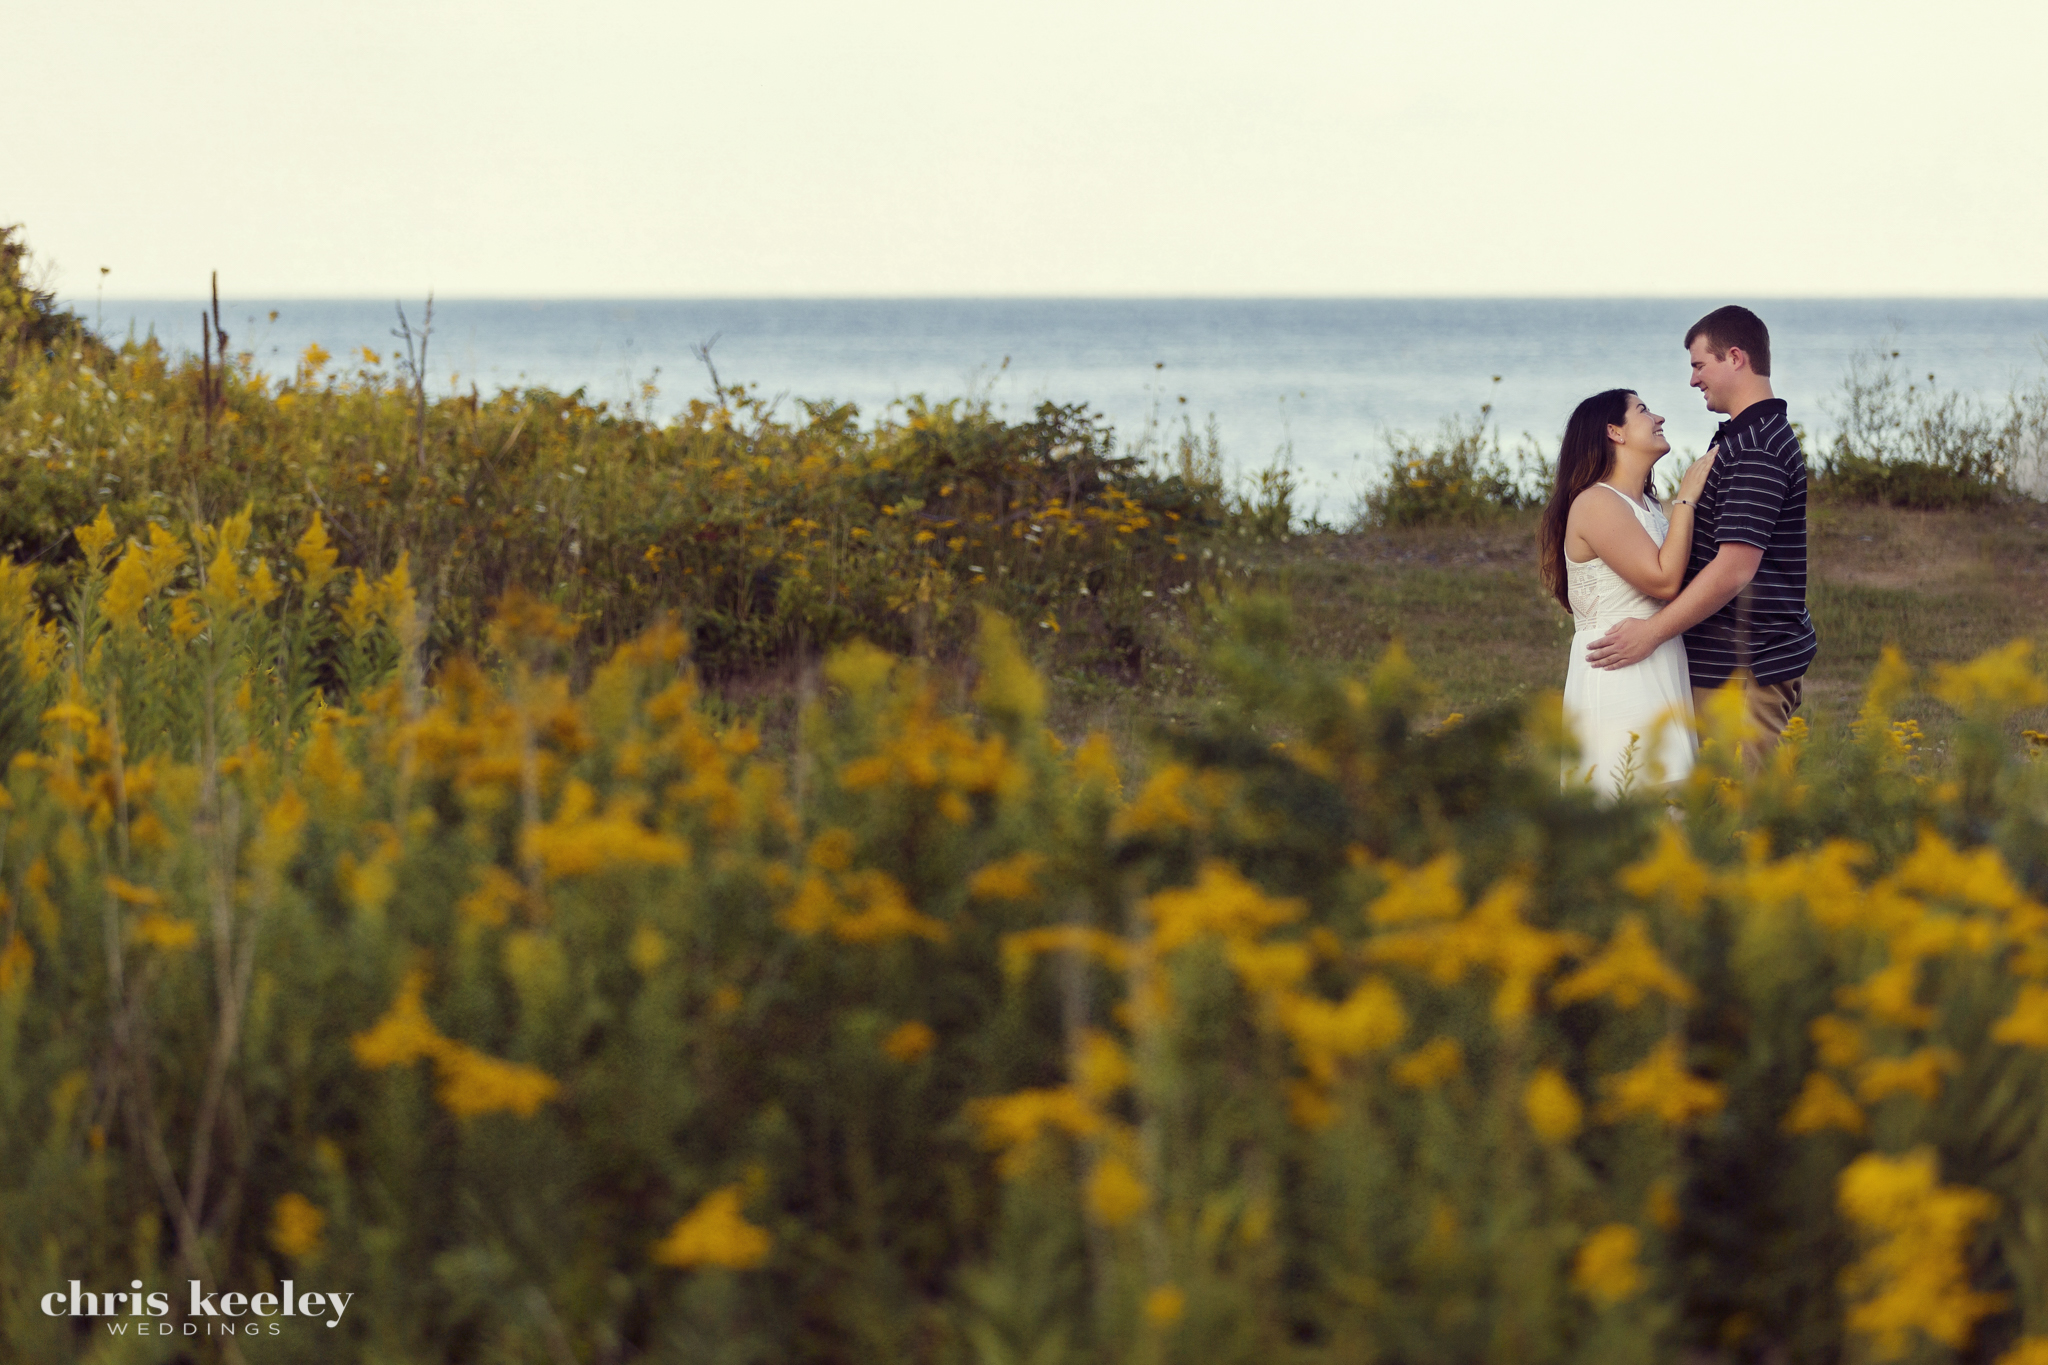 28-engagement-wedding-pictures-rye-new-hampshire-chris-keeley-weddings.jpg